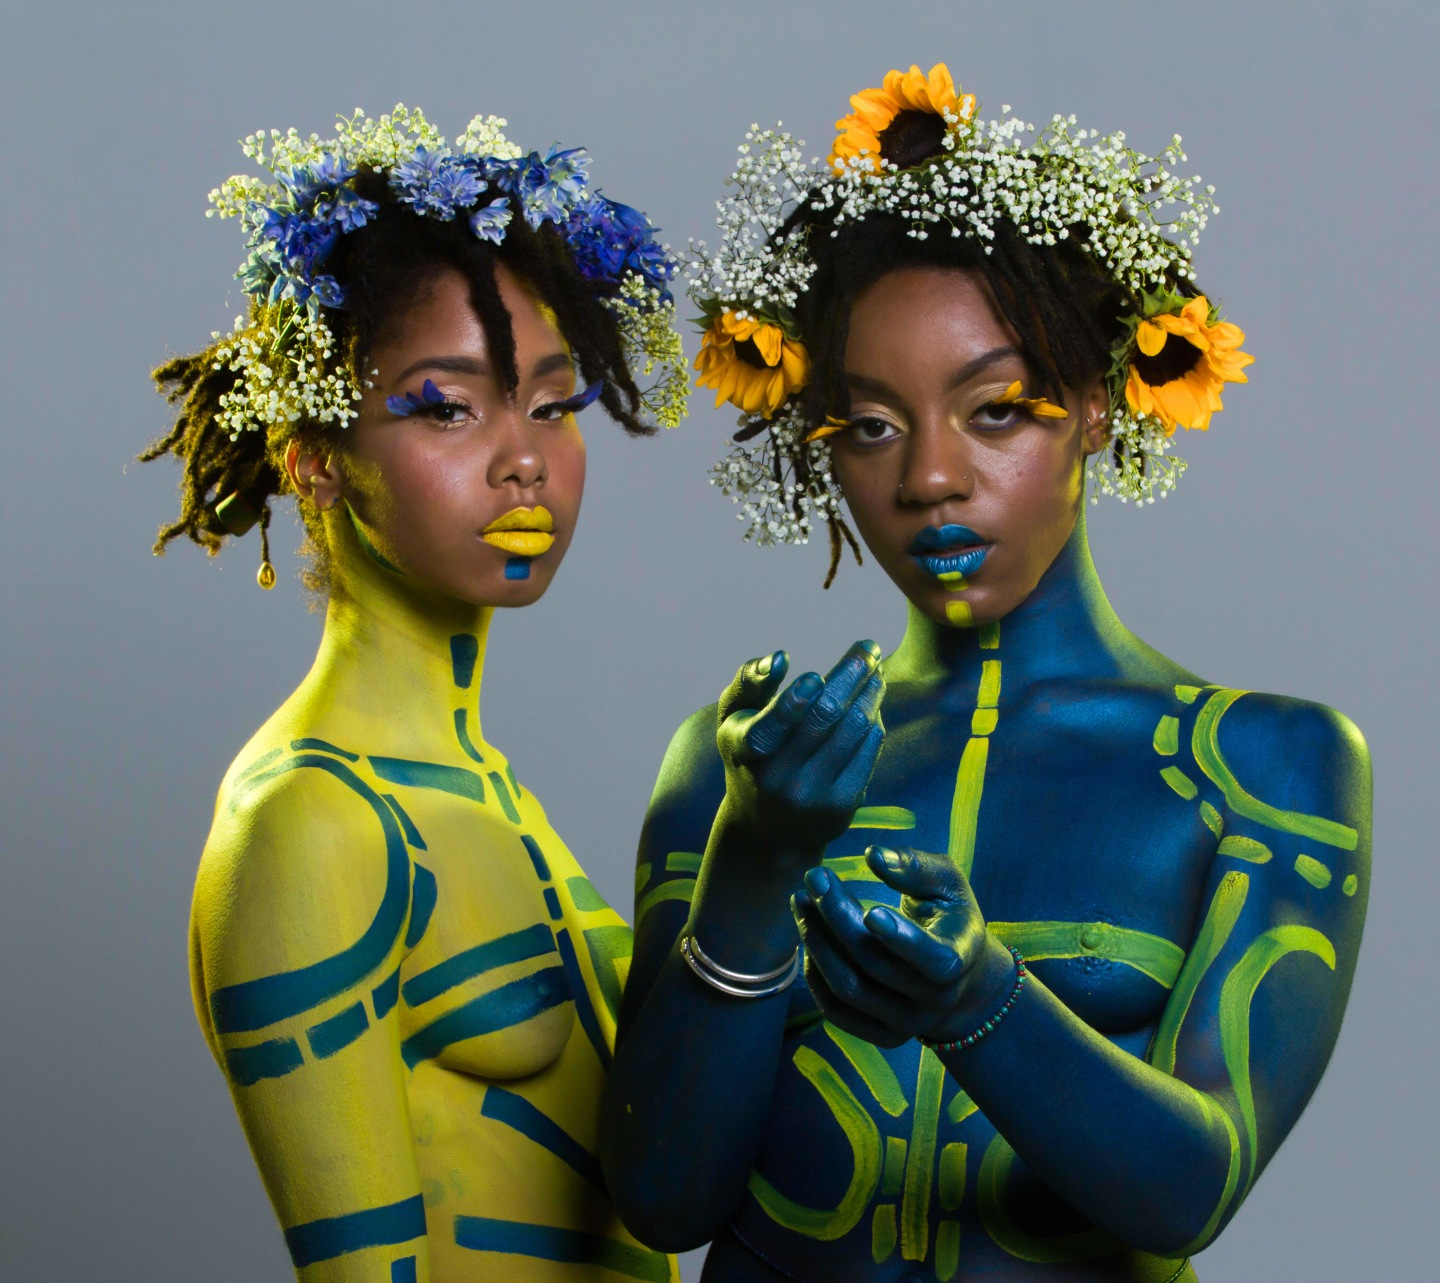 OSHUN Makes R&B With A Fluidity That Speaks To Their Yoruba Namesake